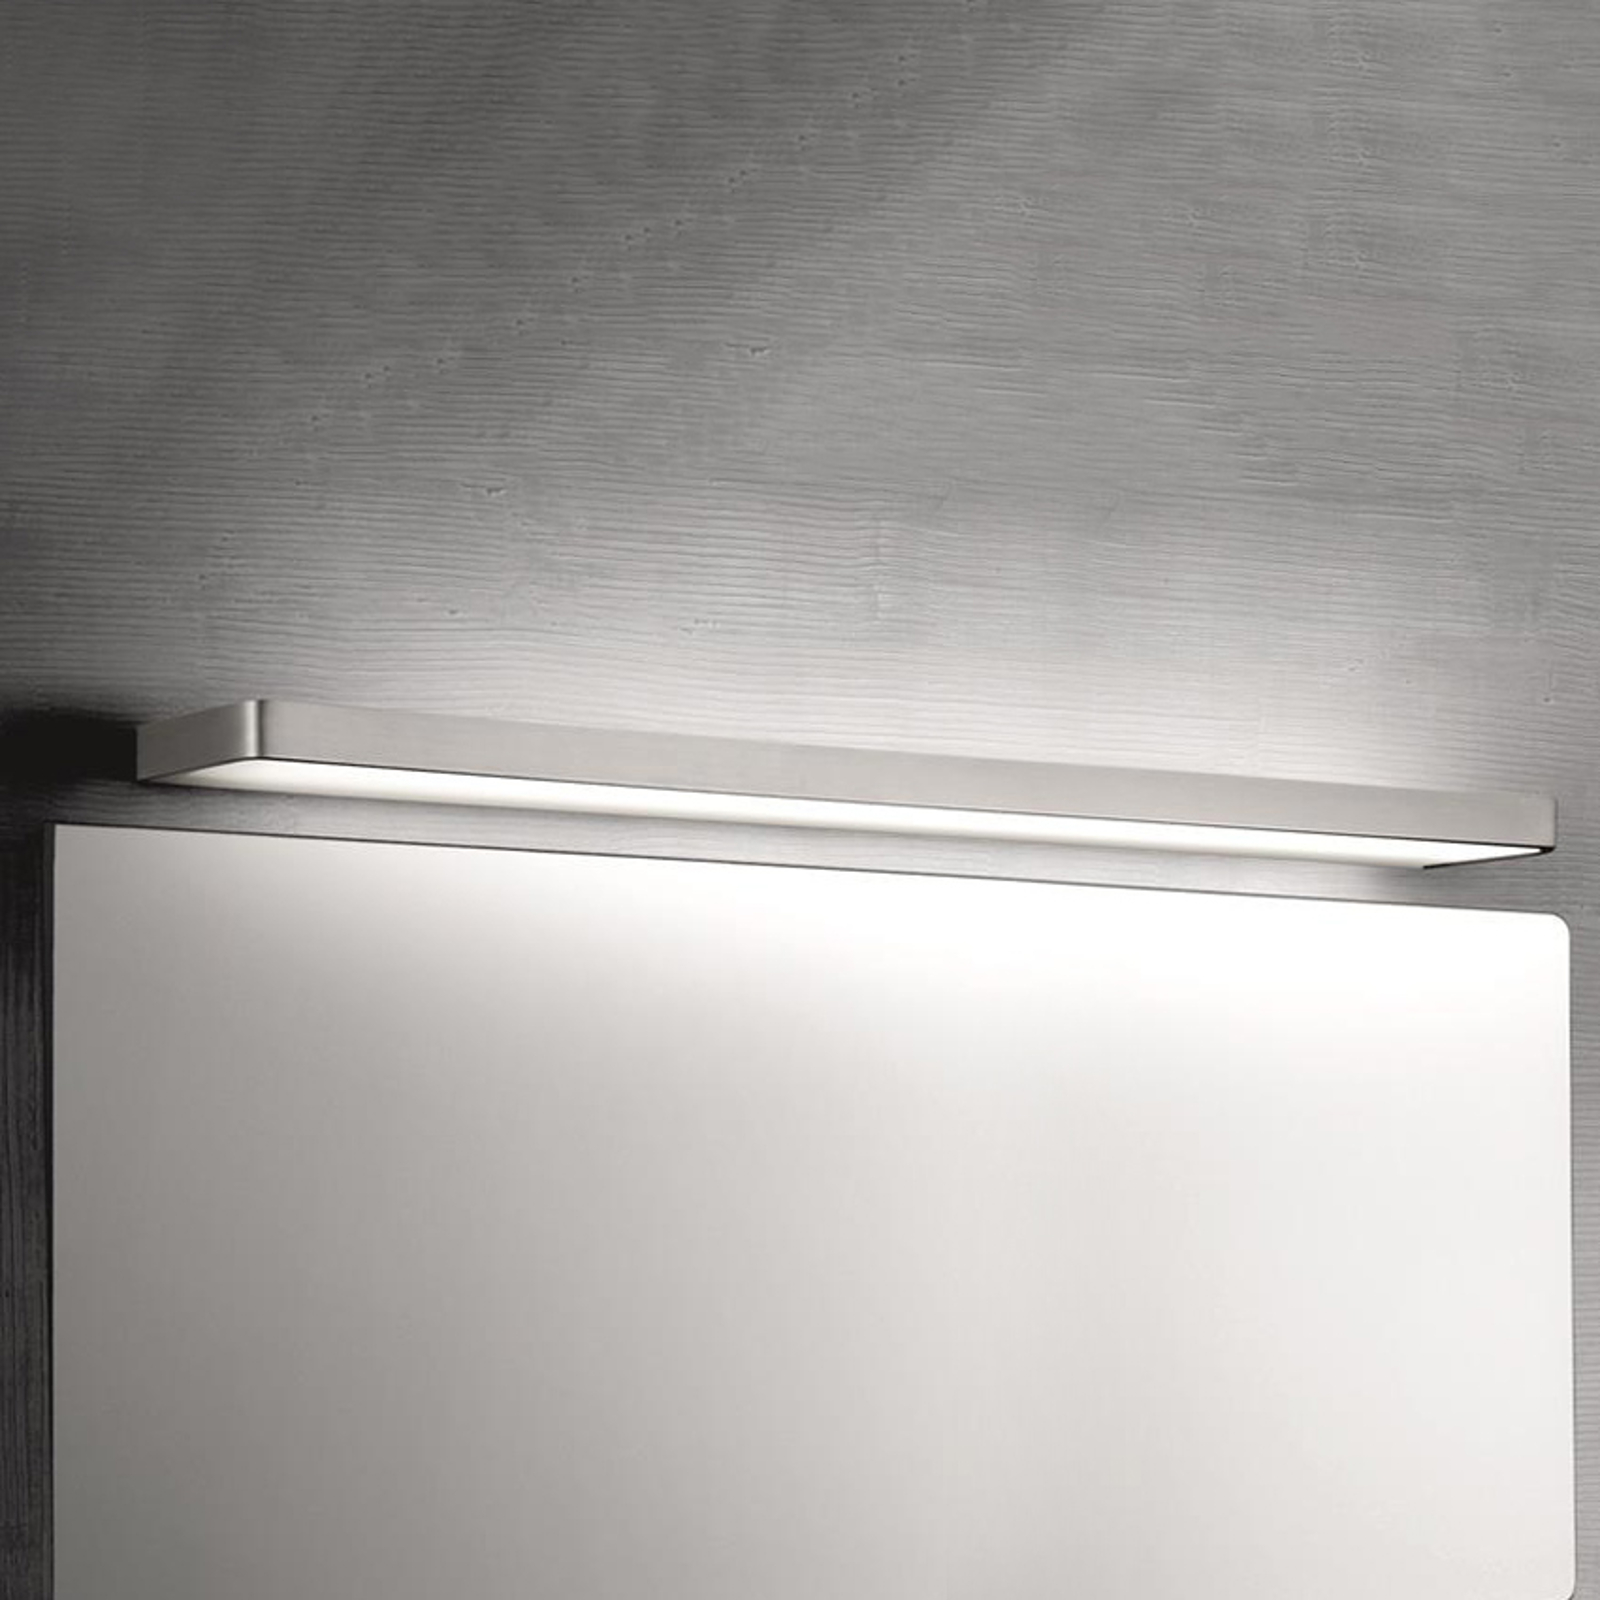 Arcos — applique LED au design moderne